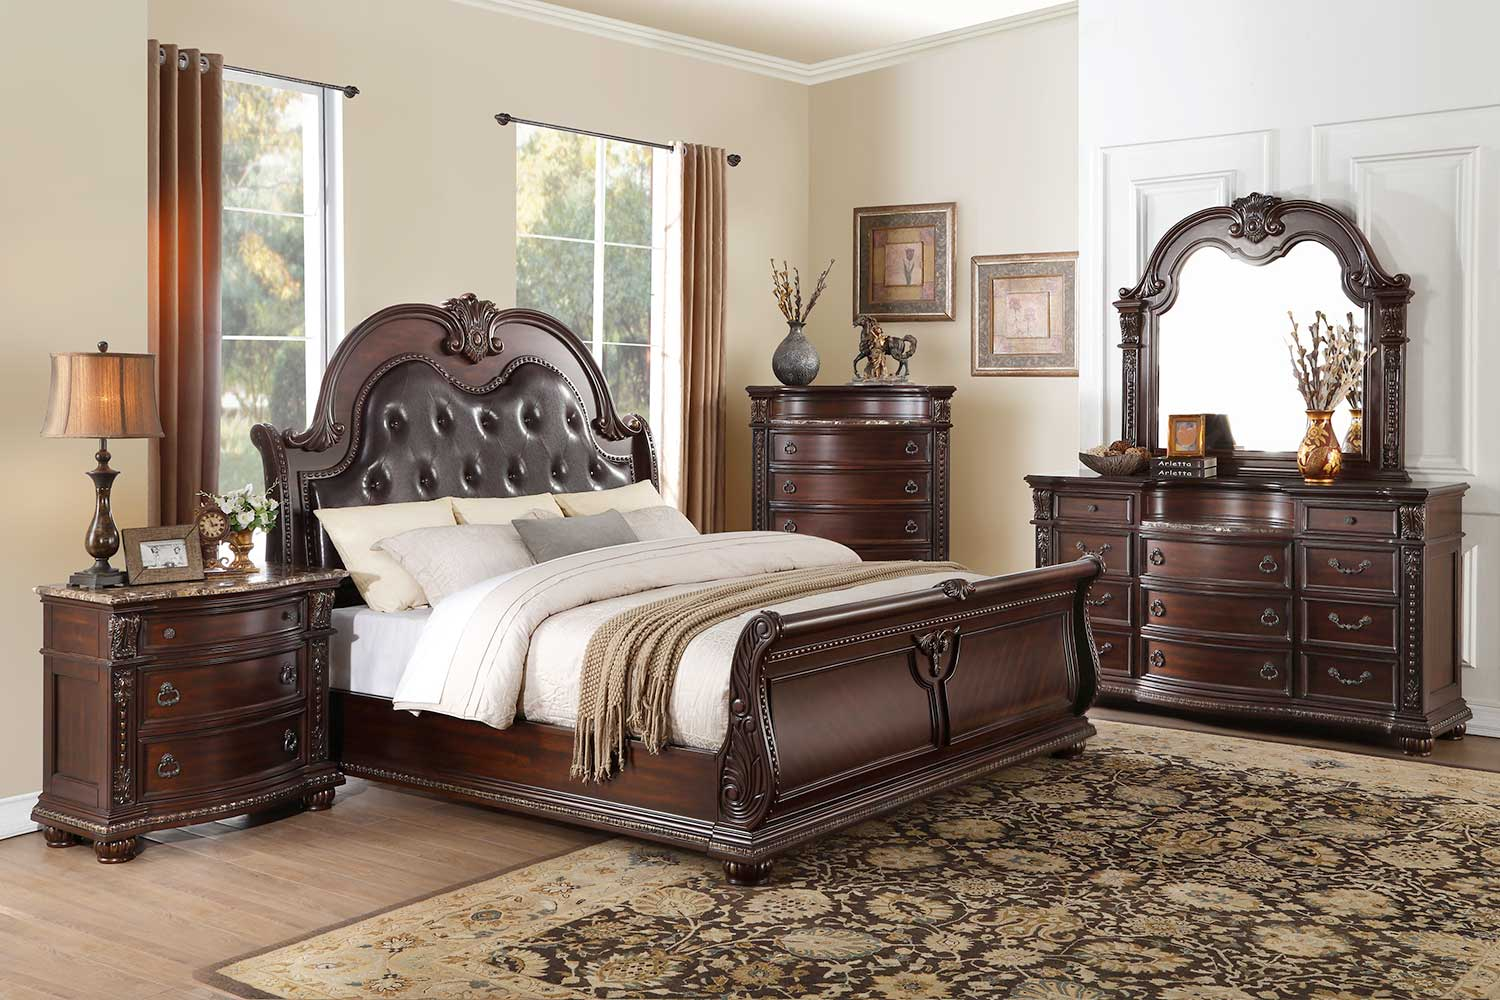 Homelegance Cavalier Sleigh Bedroom Set - Dark Cherry - Brown Bi-Cast Vinyl